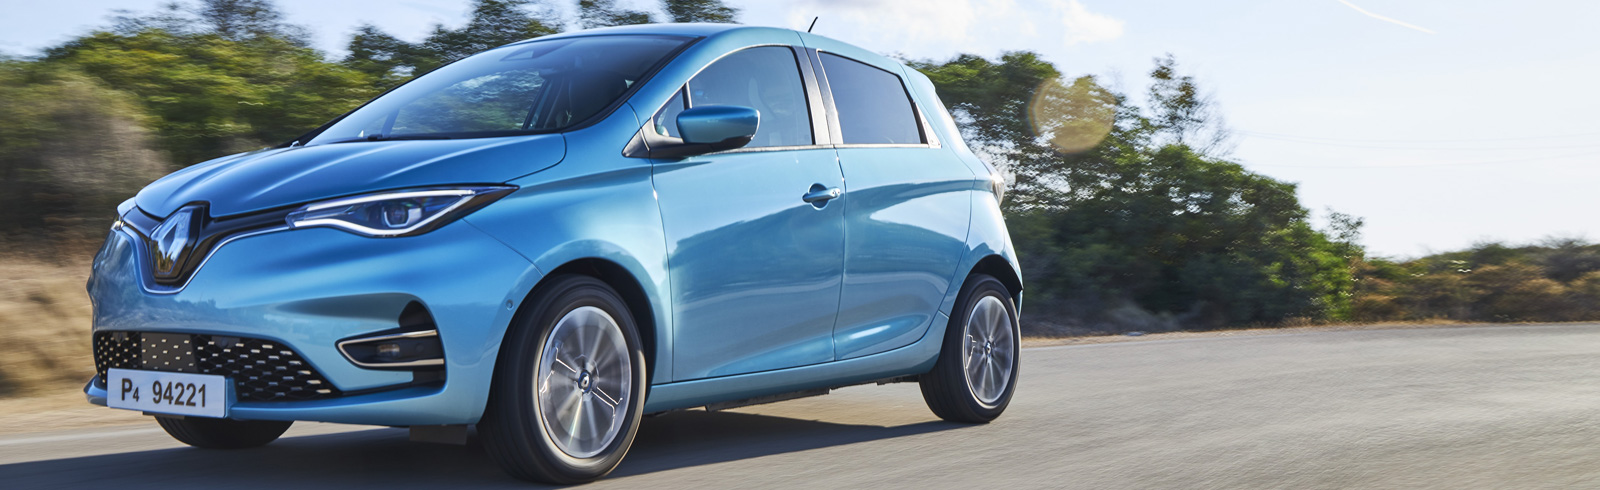 Renault Zoe is the best-selling car in Europe for the first half of 2020